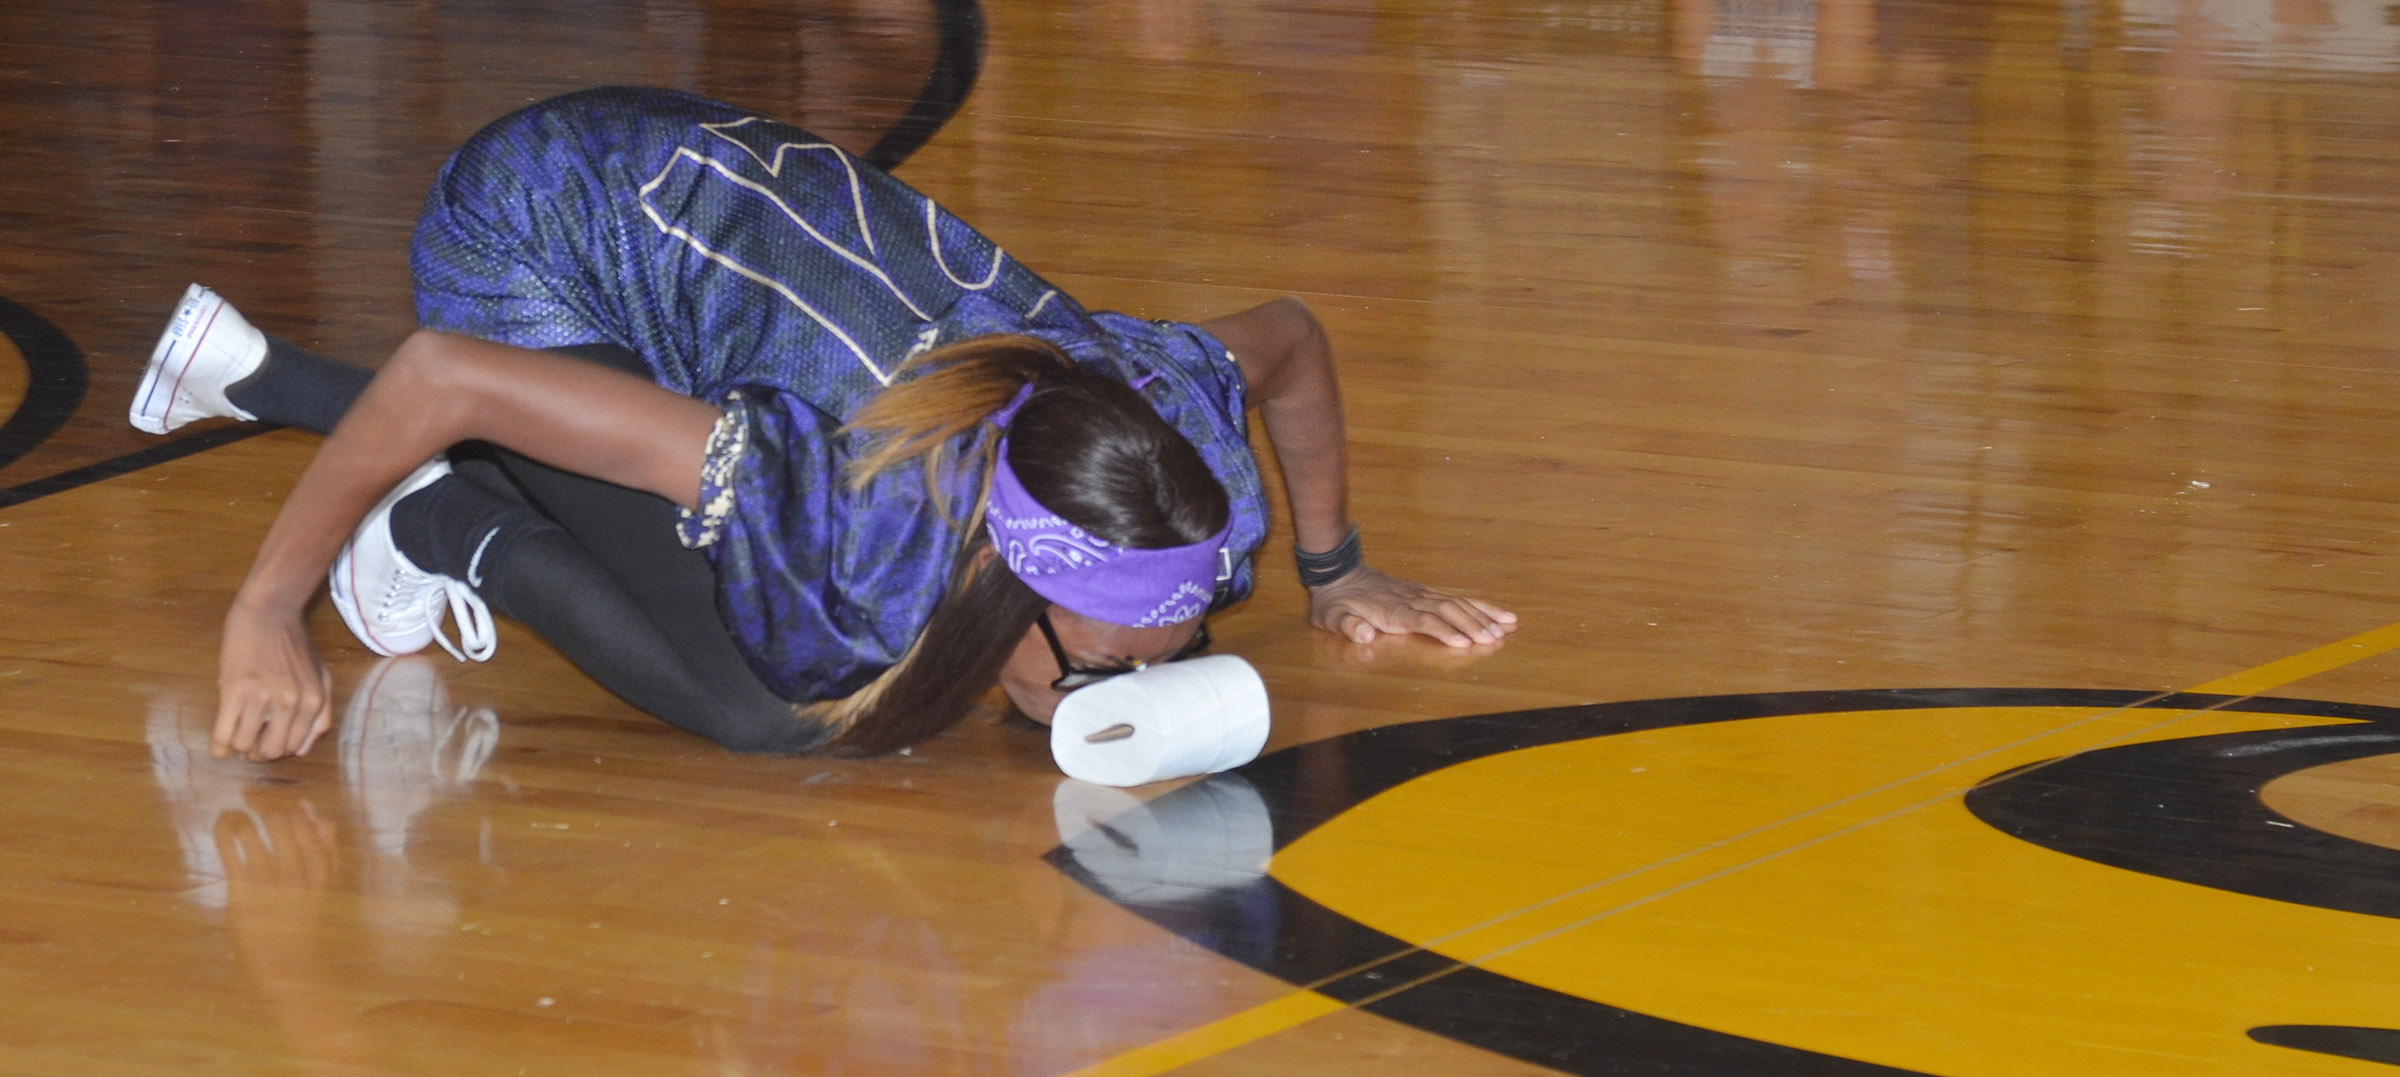 CMS eighth-grader Bri Gowdy moves a roll of tissue paper down the gym floor with her nose while competing in a spirit game.